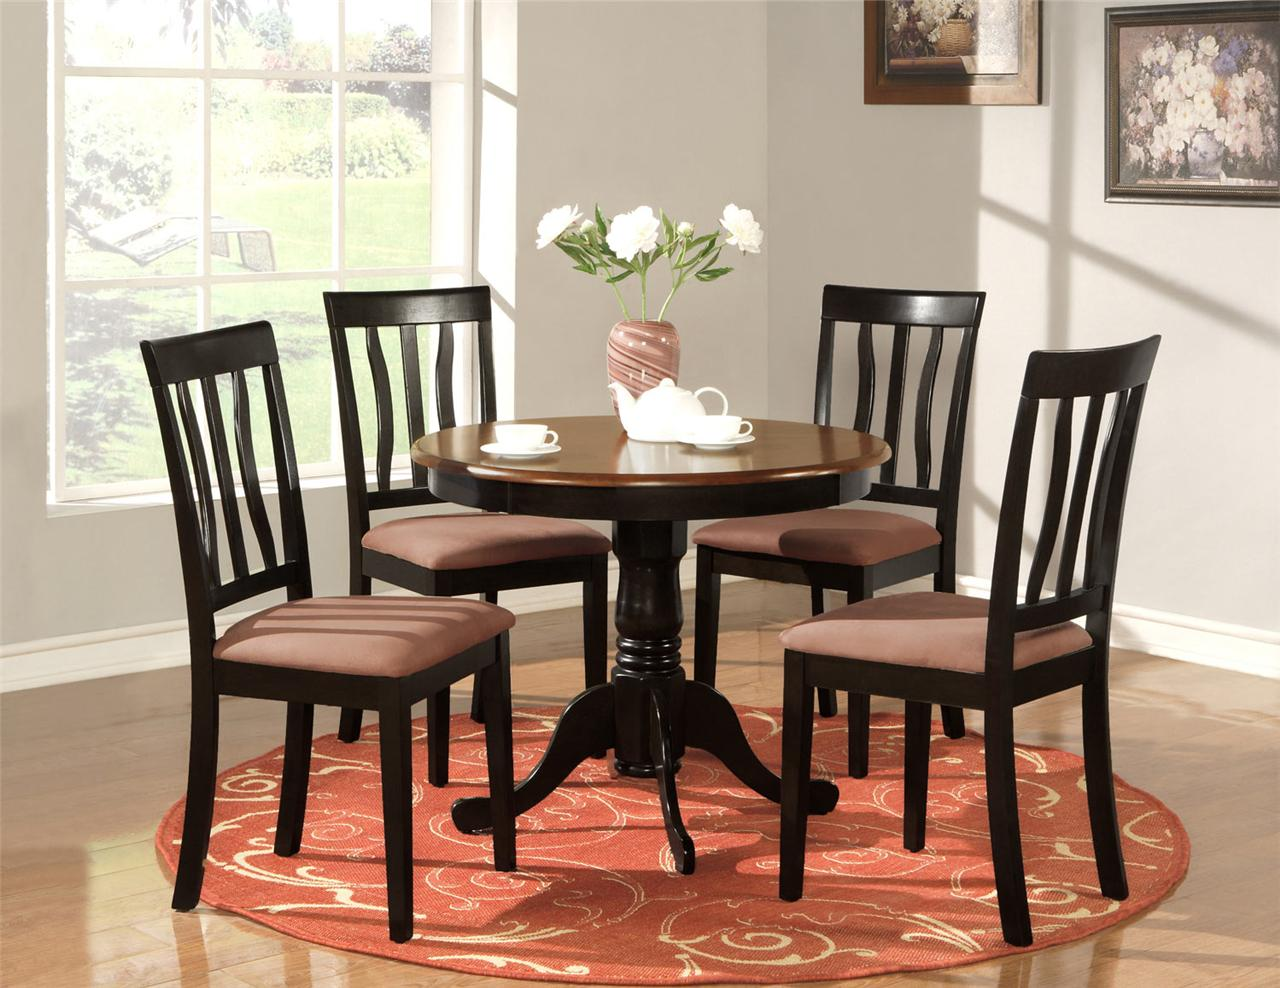 5 pc round table dinette kitchen table 4 chairs oak ebay. Black Bedroom Furniture Sets. Home Design Ideas